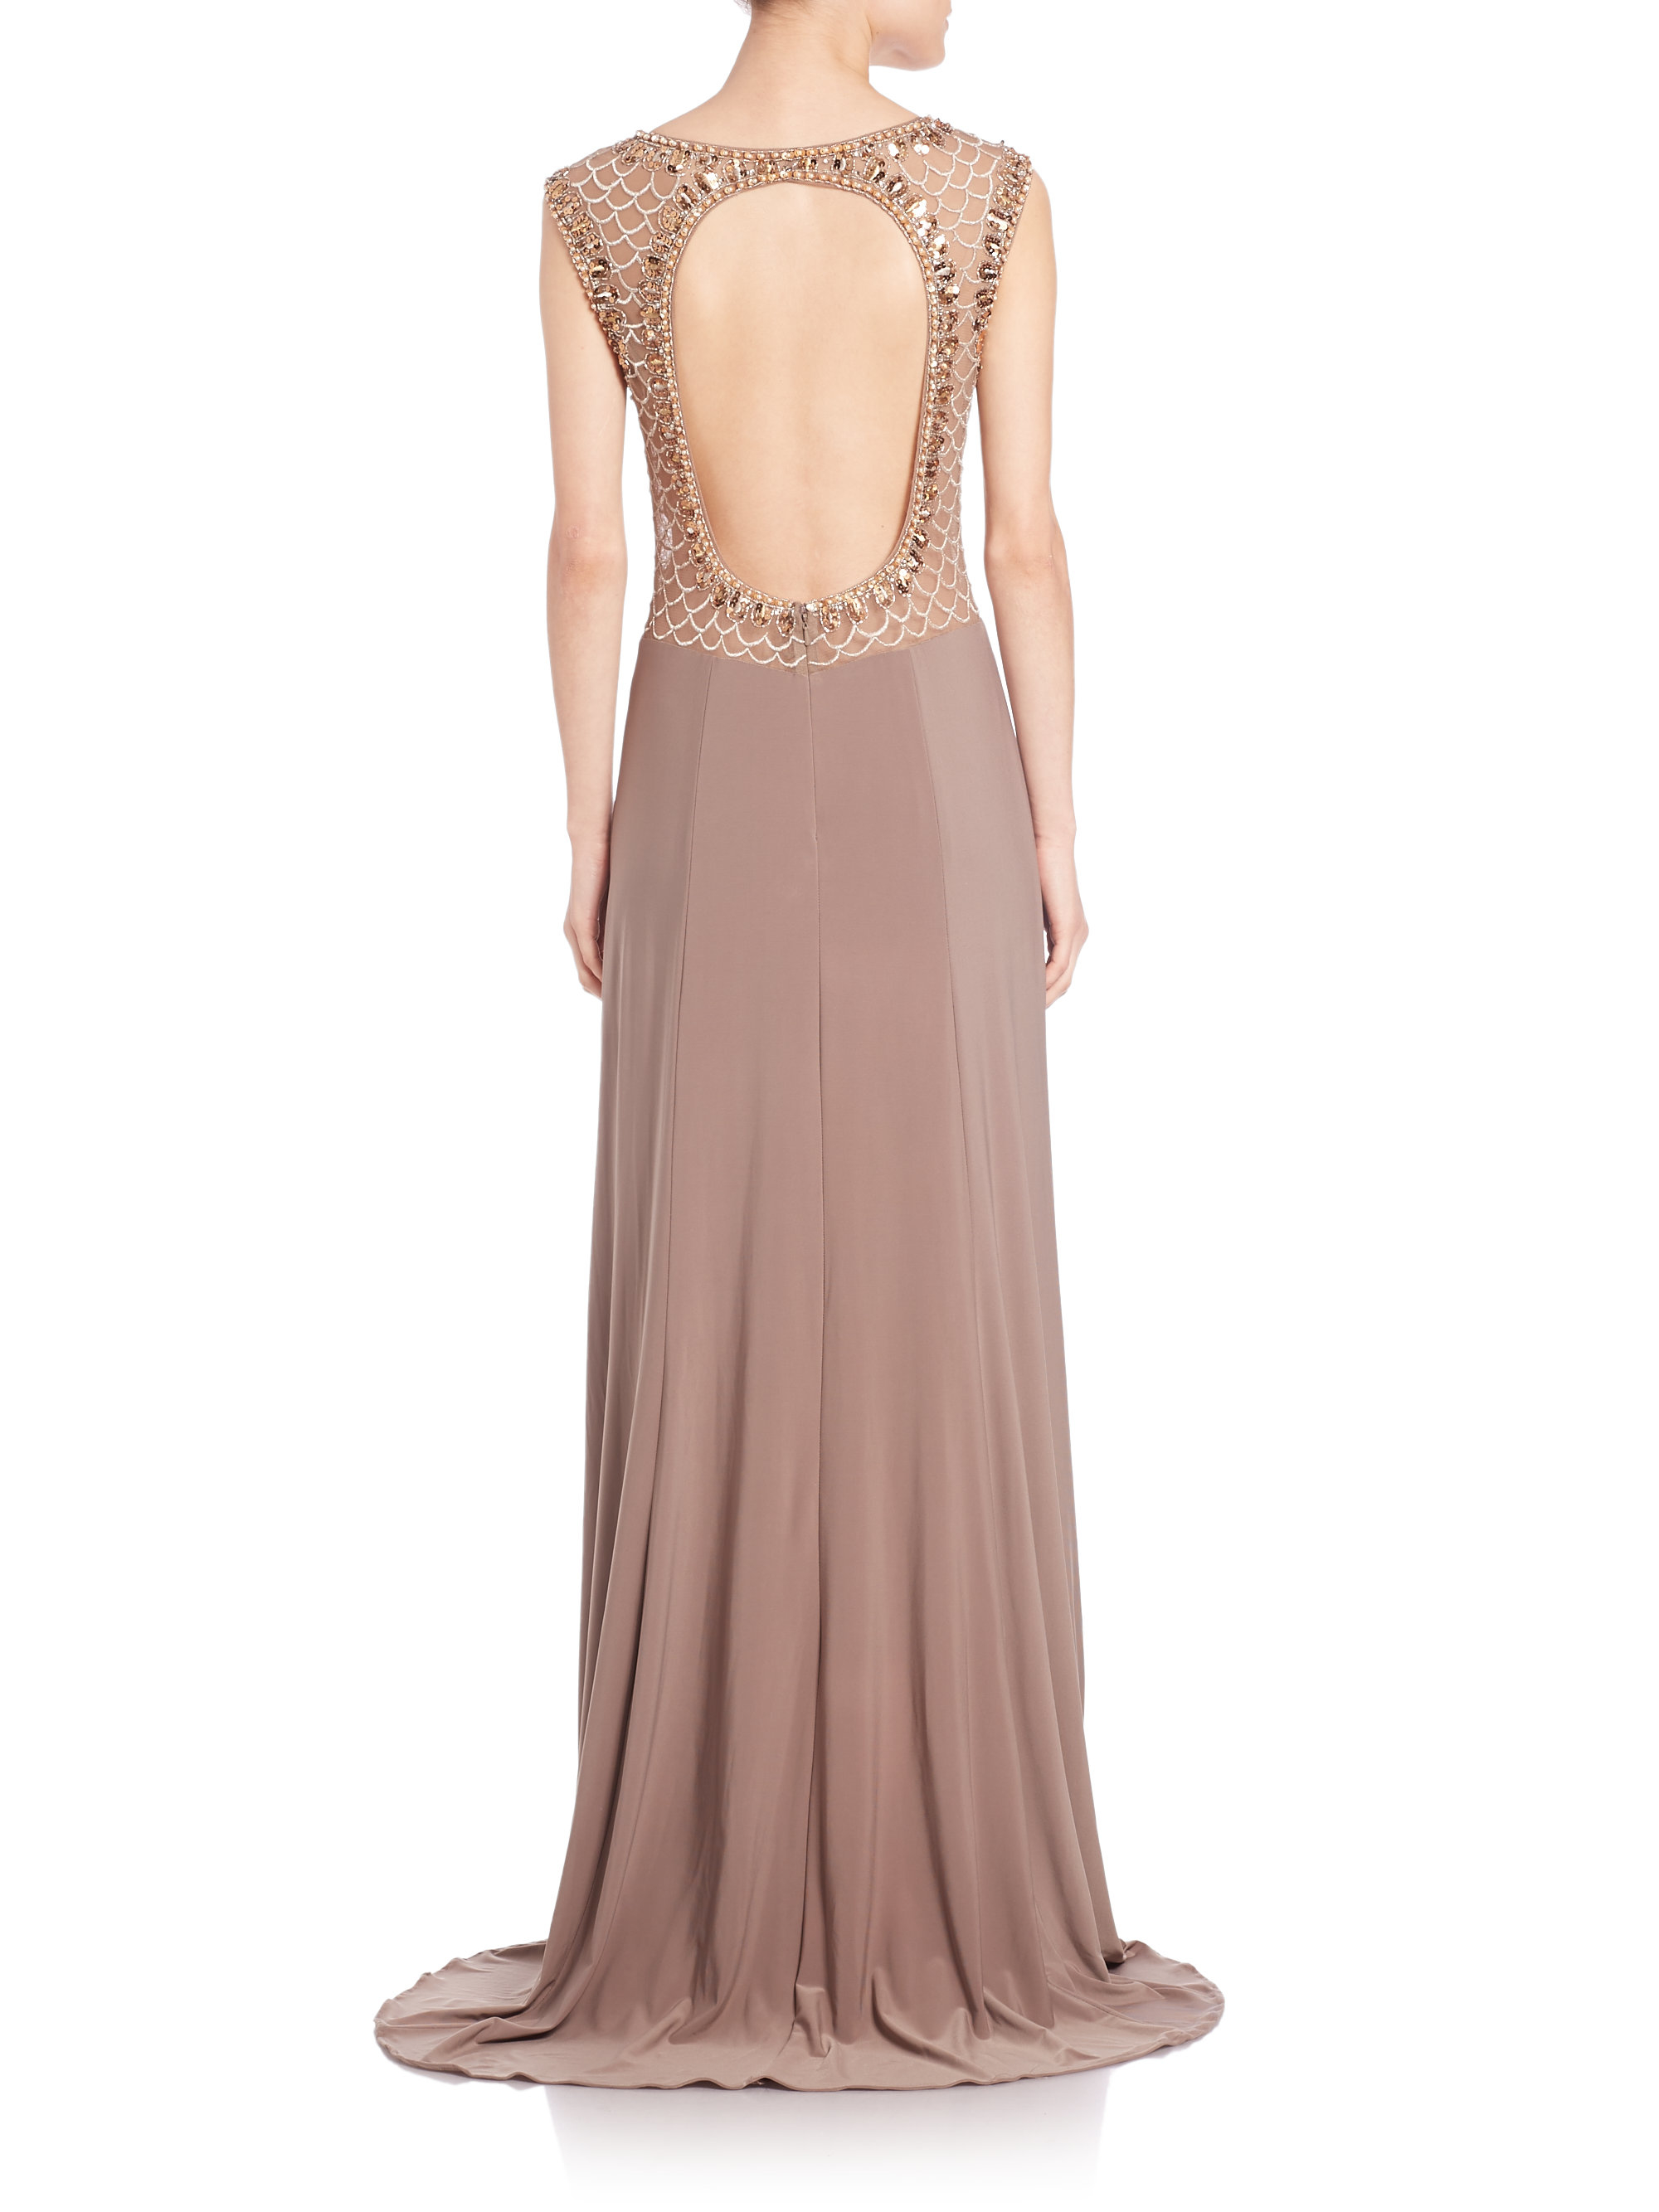 Lyst - Sue Wong Beaded Open-back Gown in Brown